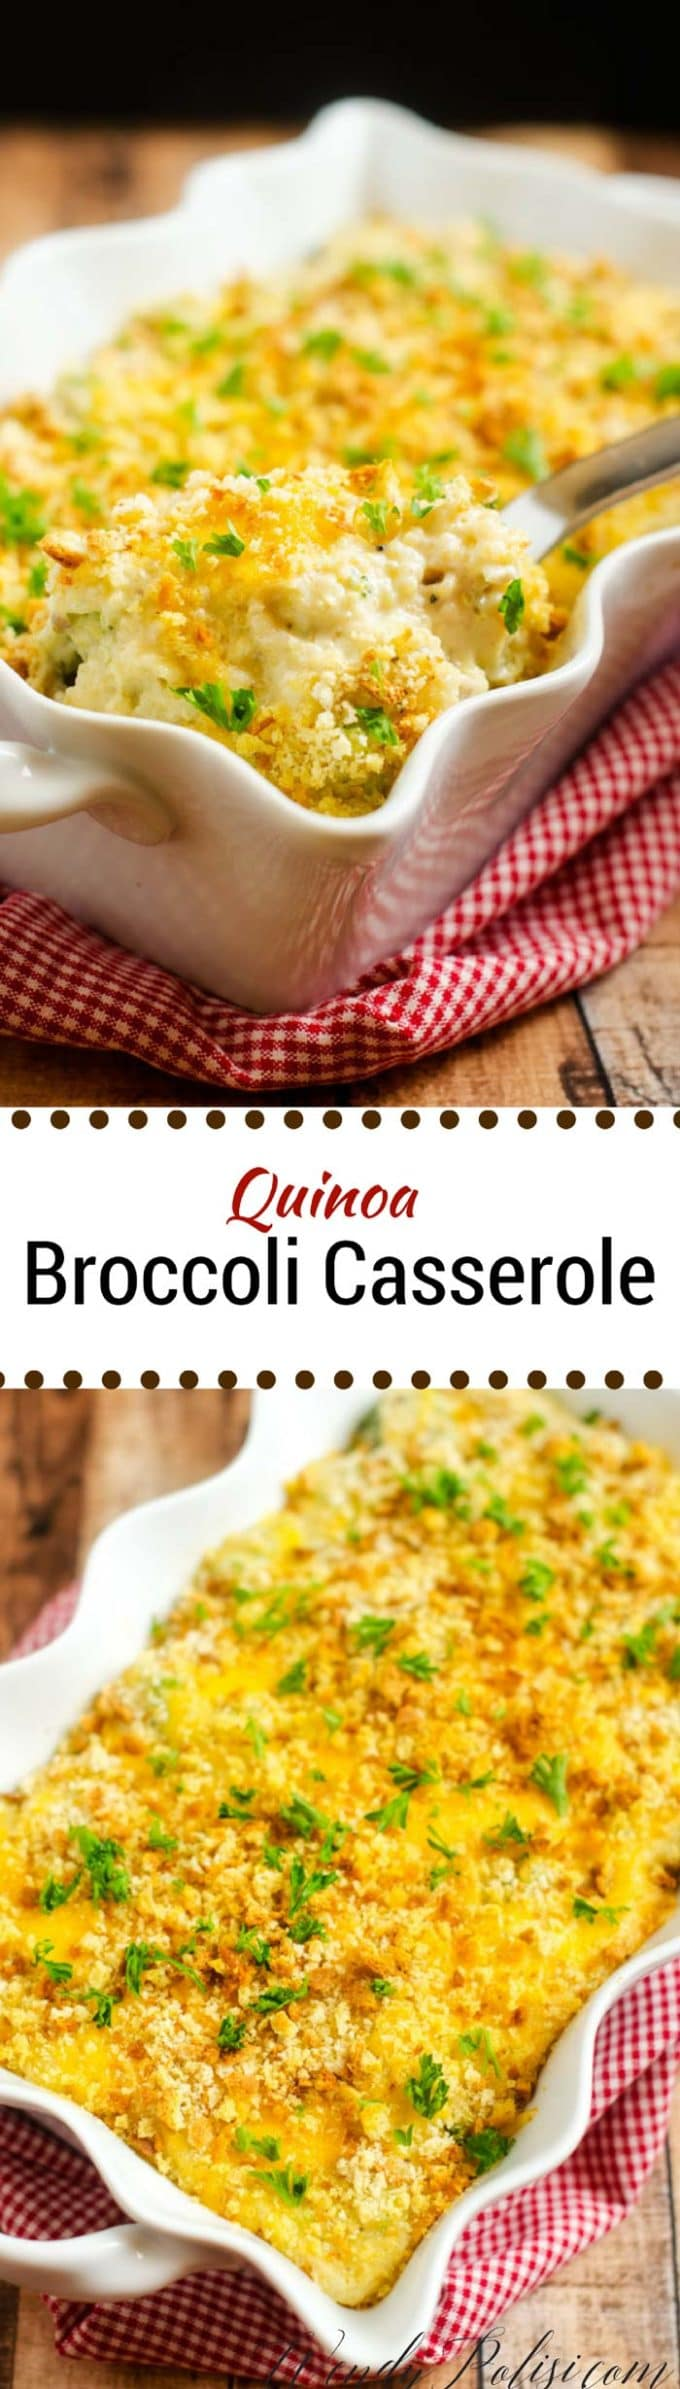 This Quinoa Broccoli Casserole is easy to make and packed with flavor!  With cheddar, goat cheese and a hint of kick this healthy recipe makes a great family meal.